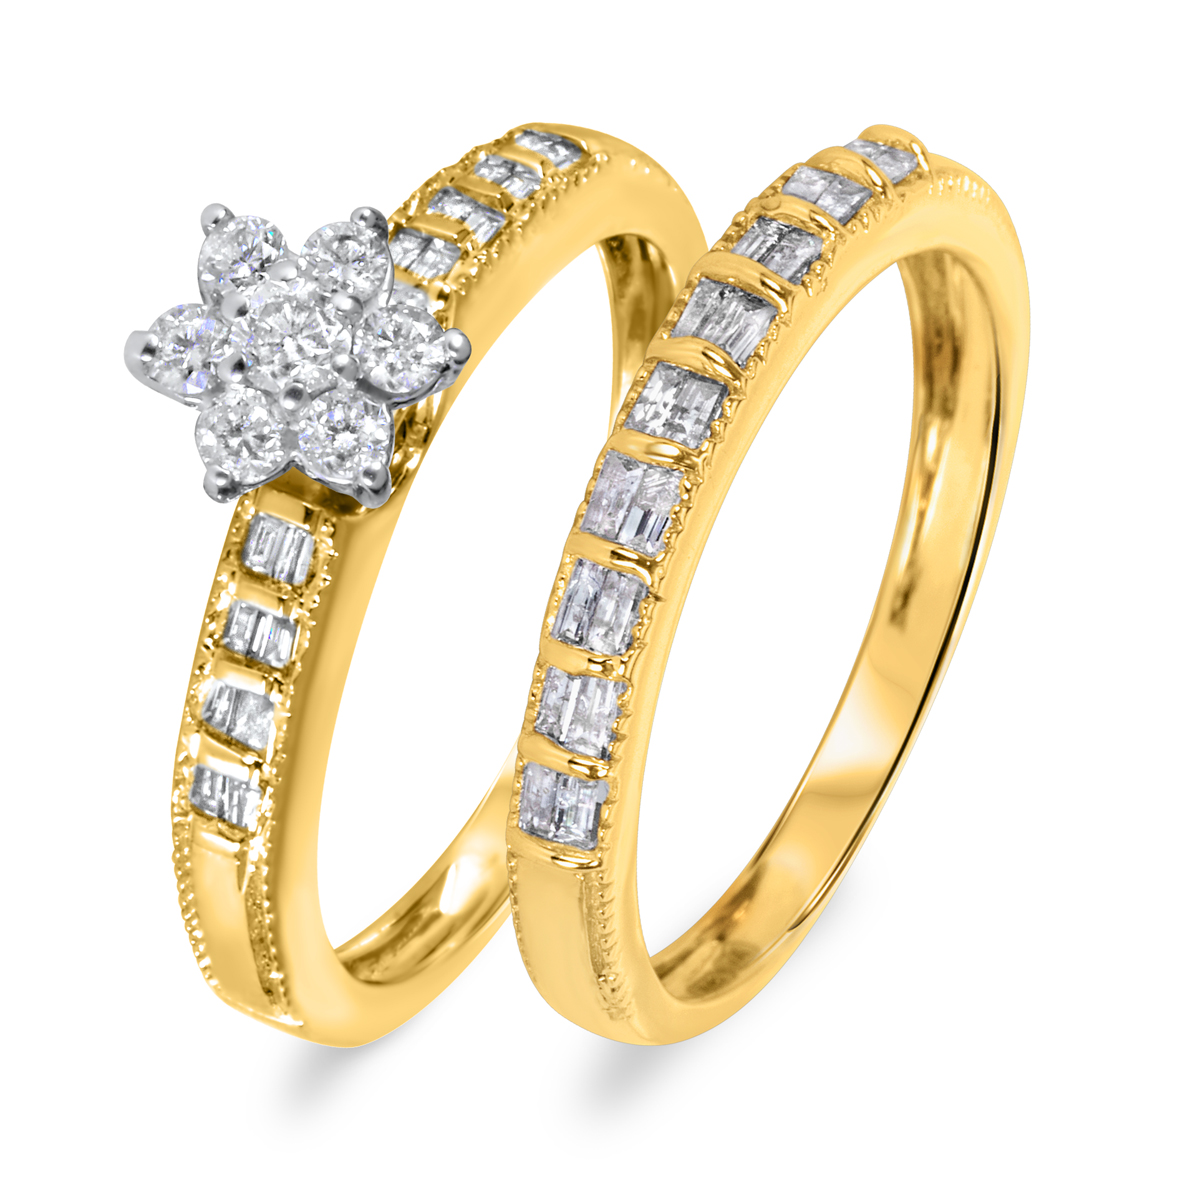 5/8 CT. T.W. Diamond Women's Bridal Wedding Ring Set 14K Yellow Gold